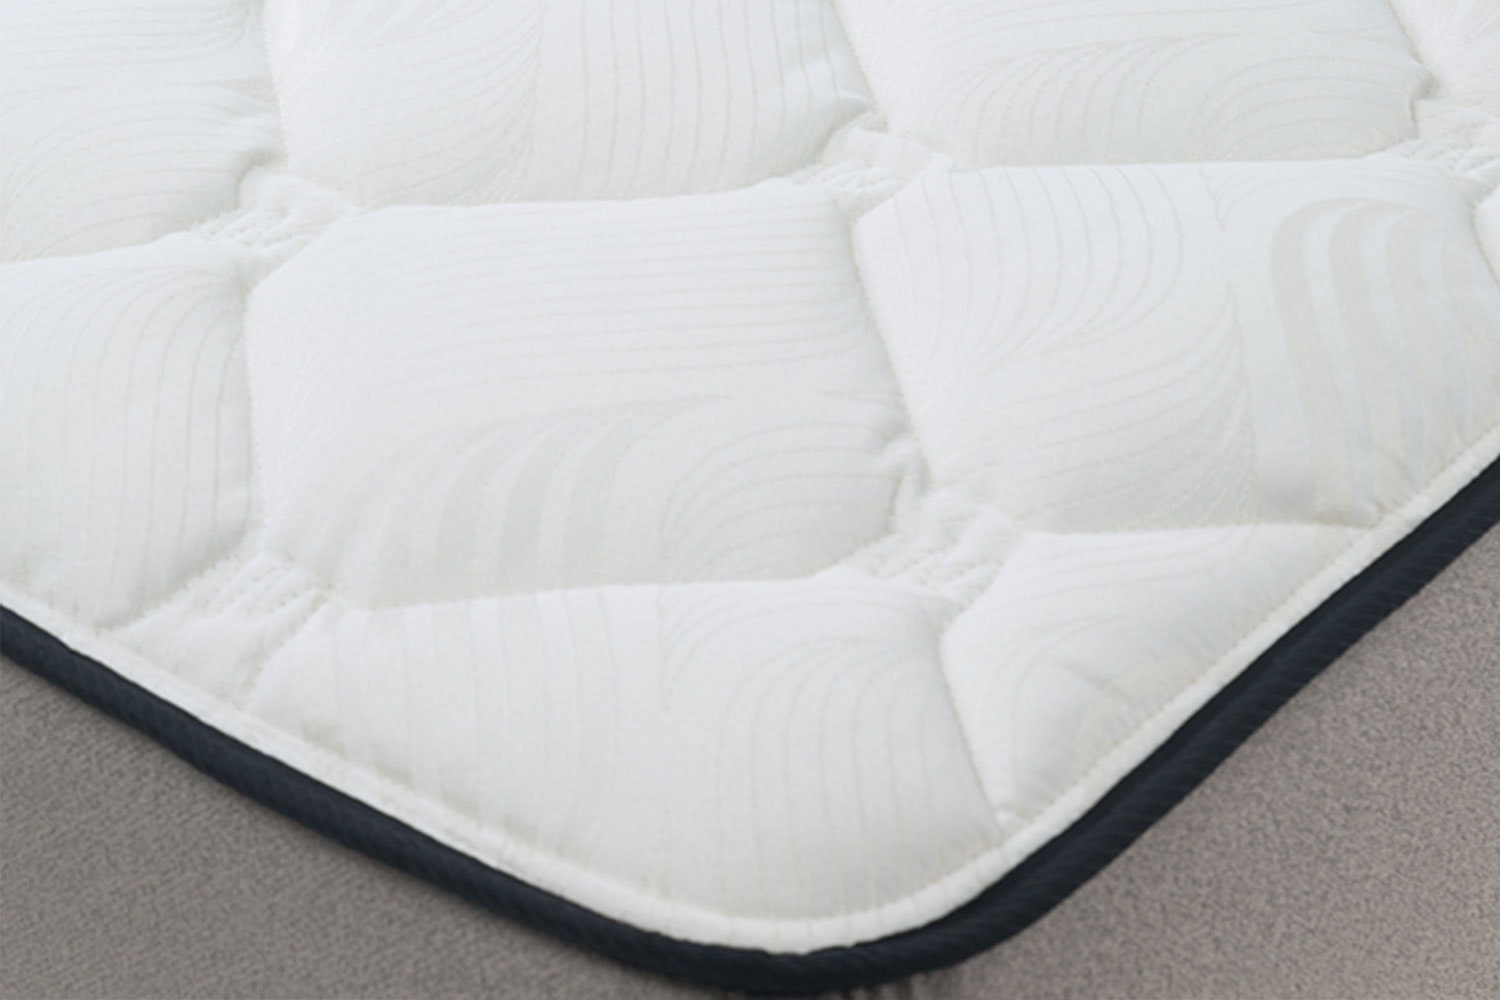 Sleep Support Medium Queen Bed by Sleepmaker